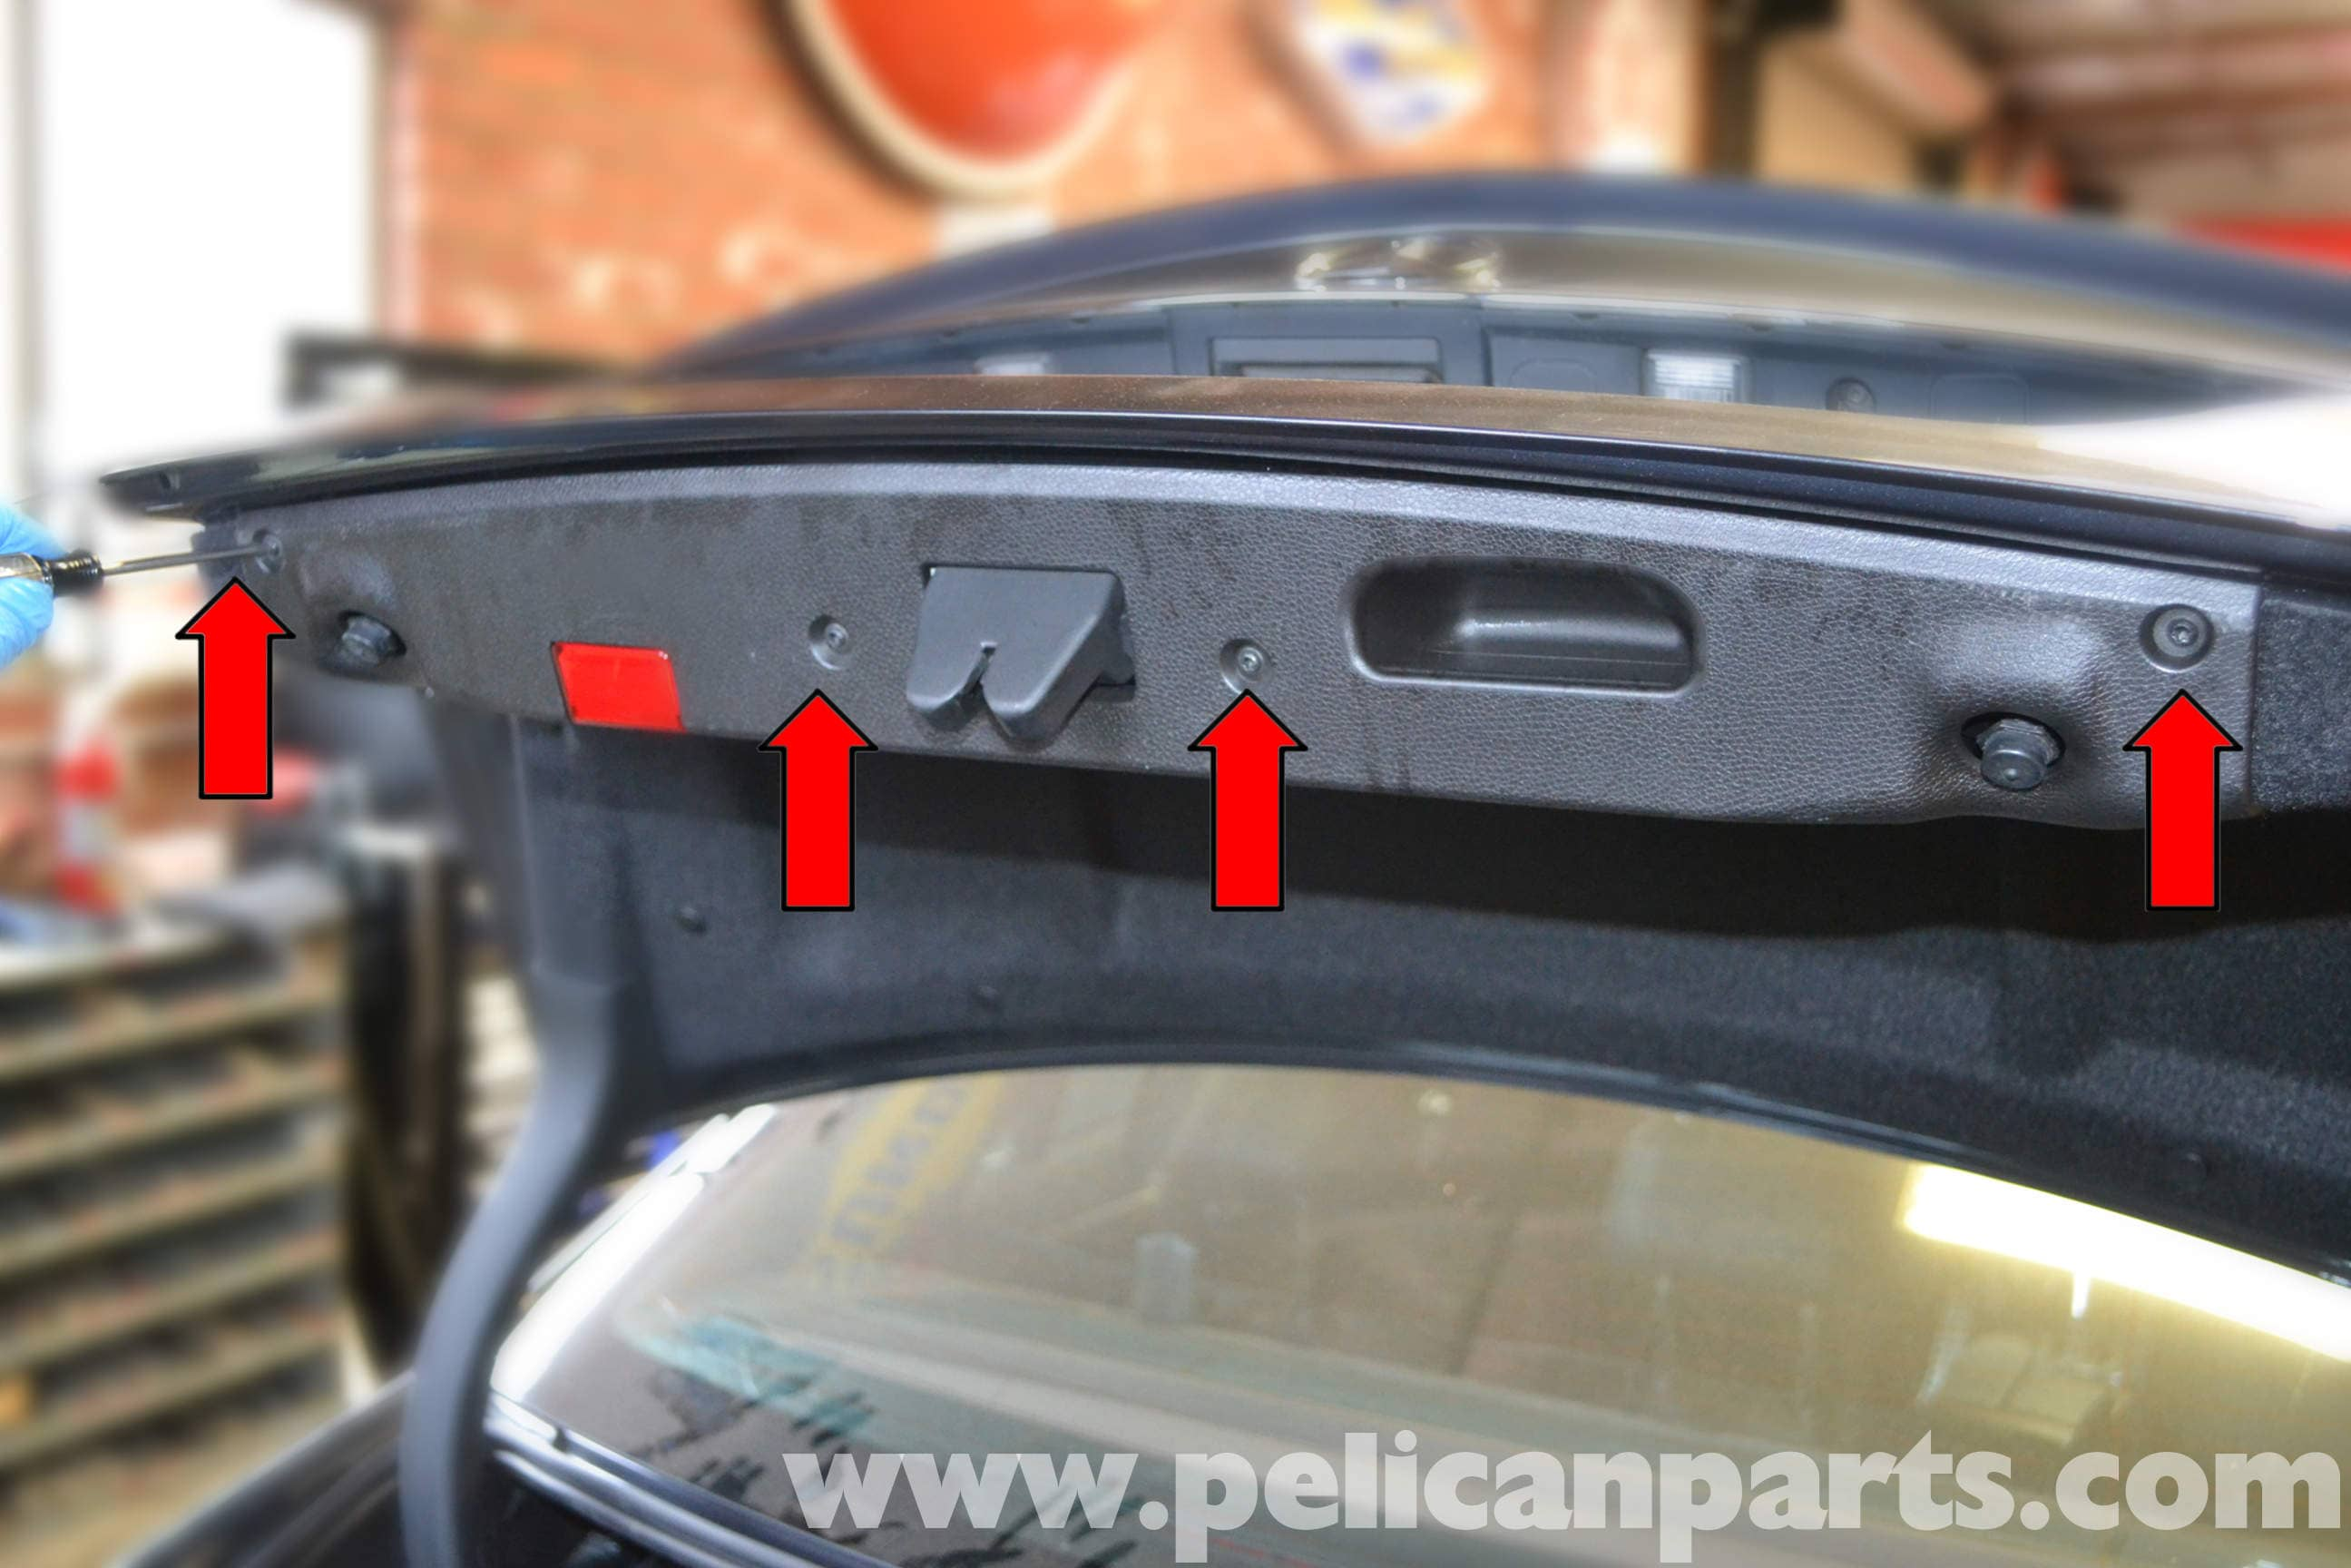 Mercedes benz w204 trunk interior panel and trim removal 2008 2014 c250 c300 c350 for Mercedes benz replacement parts for the interior